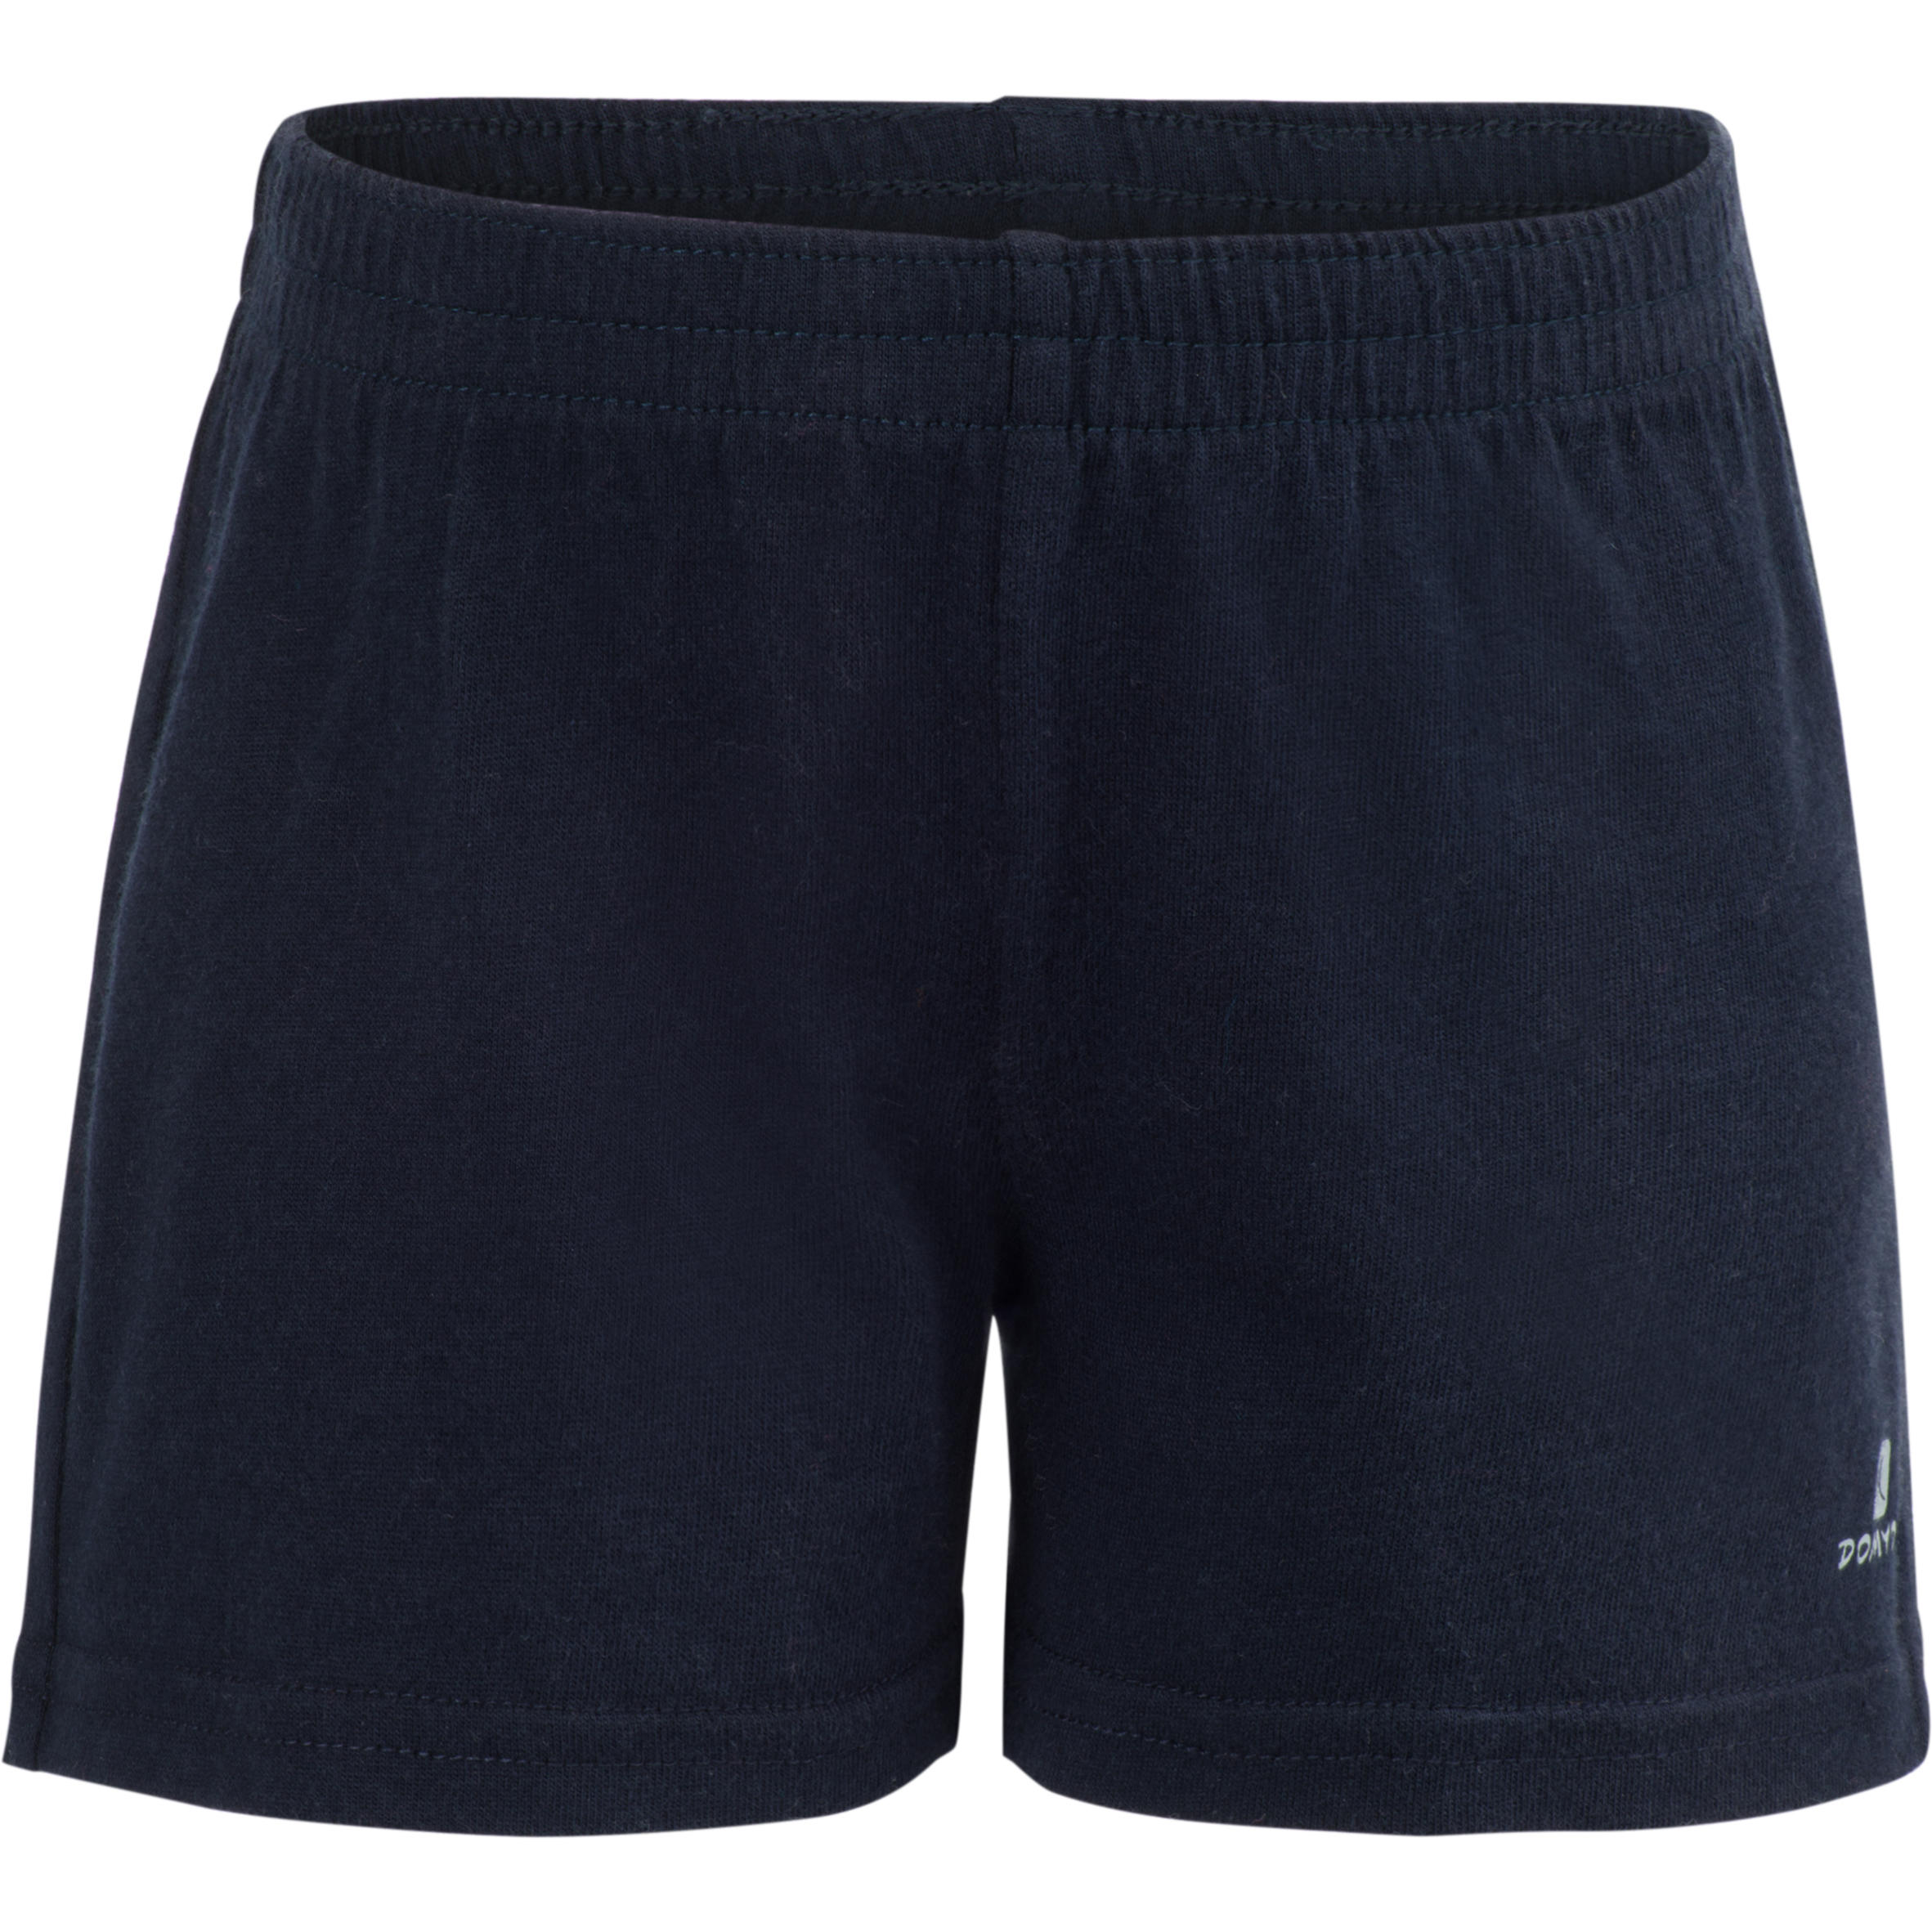 100 Baby Gym Shorts - Navy Blue